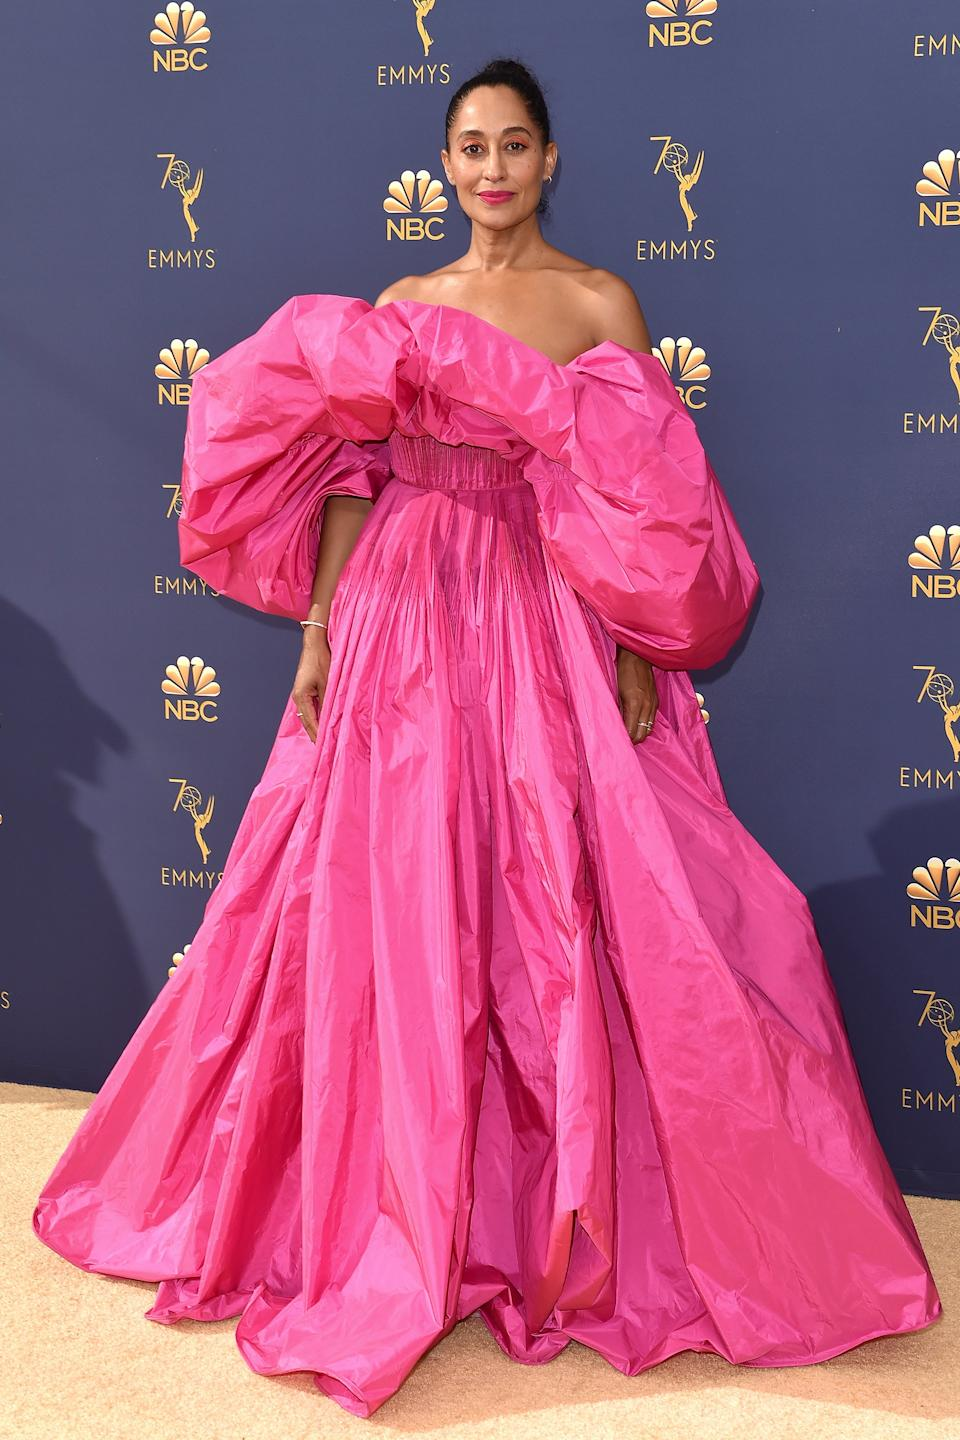 """<h2>Tracee Ellis Ross in Valentino, 2018</h2><span class=""""copyright"""">Photo: Axelle/Bauer-Griffin/FilmMagic.</span>"""